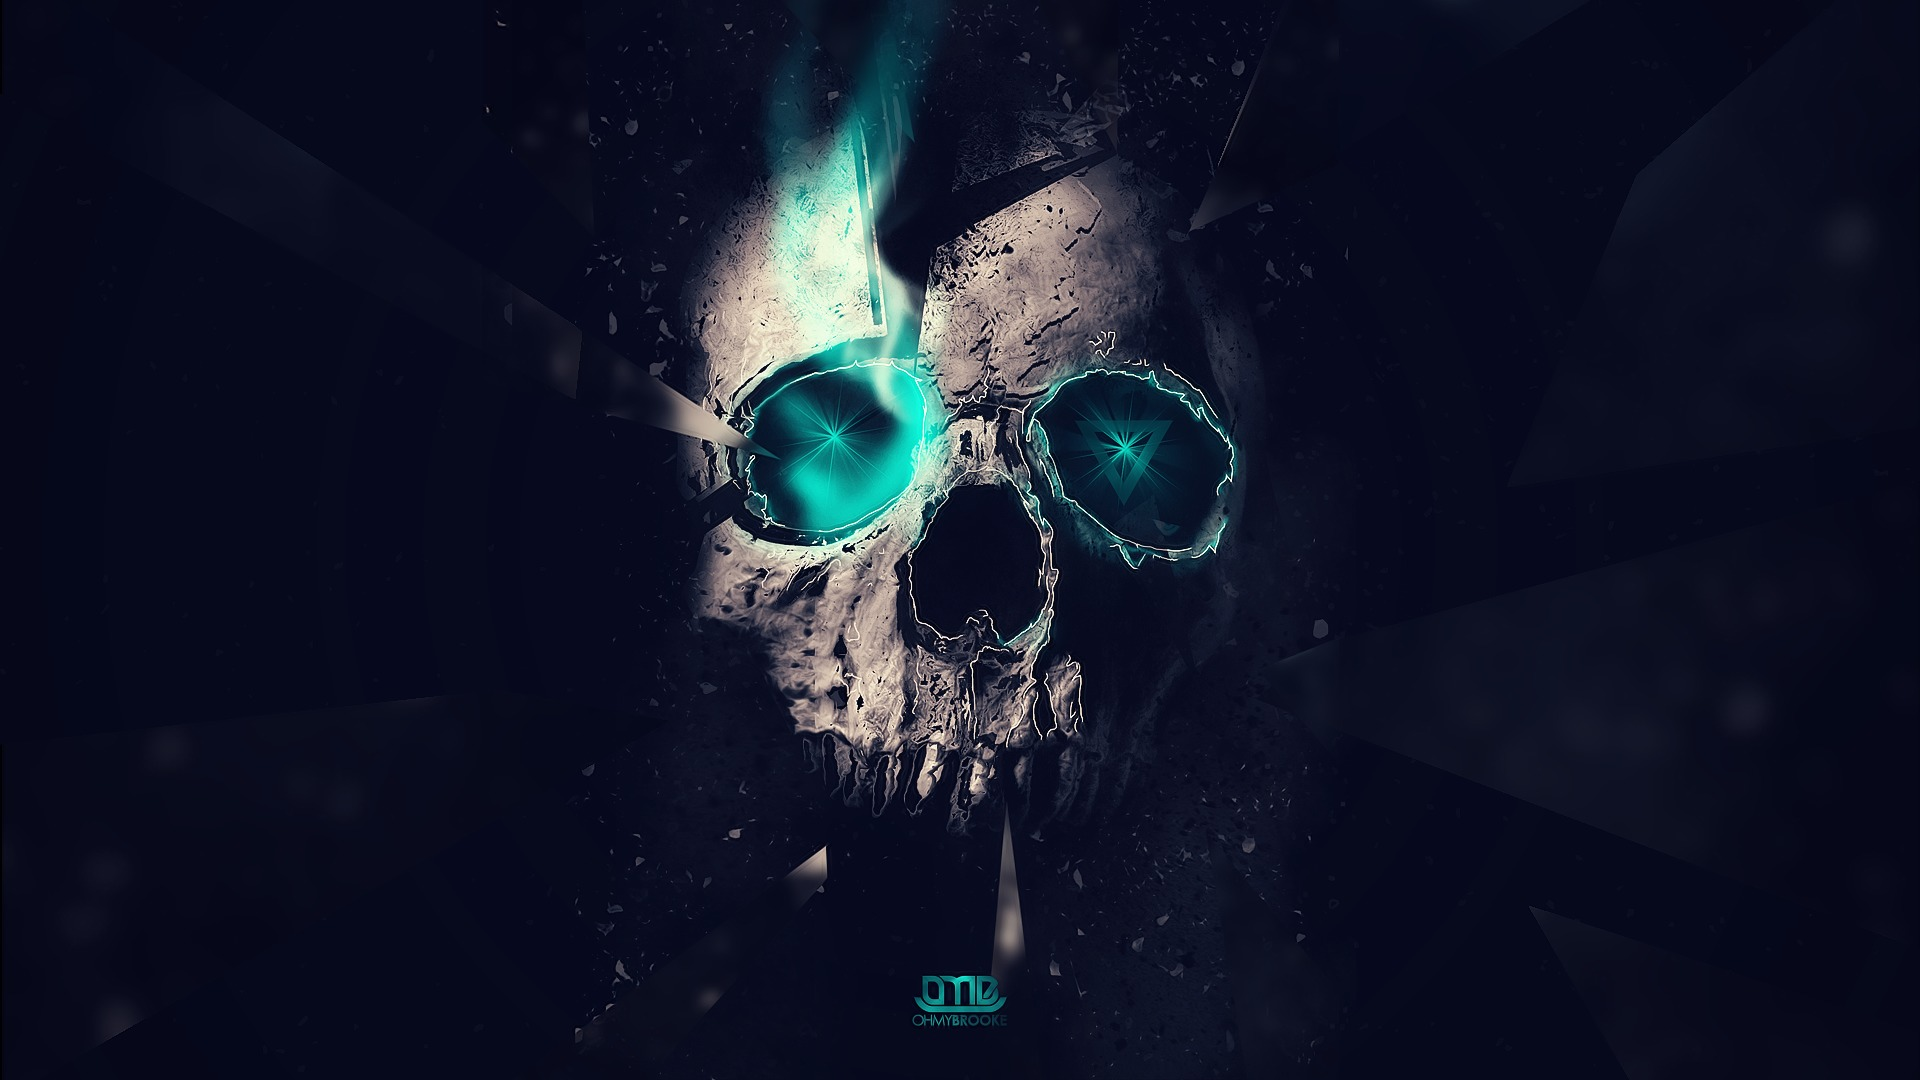 skull abstract blue lights Triangles lighting space hd wallpaper 1920x1080